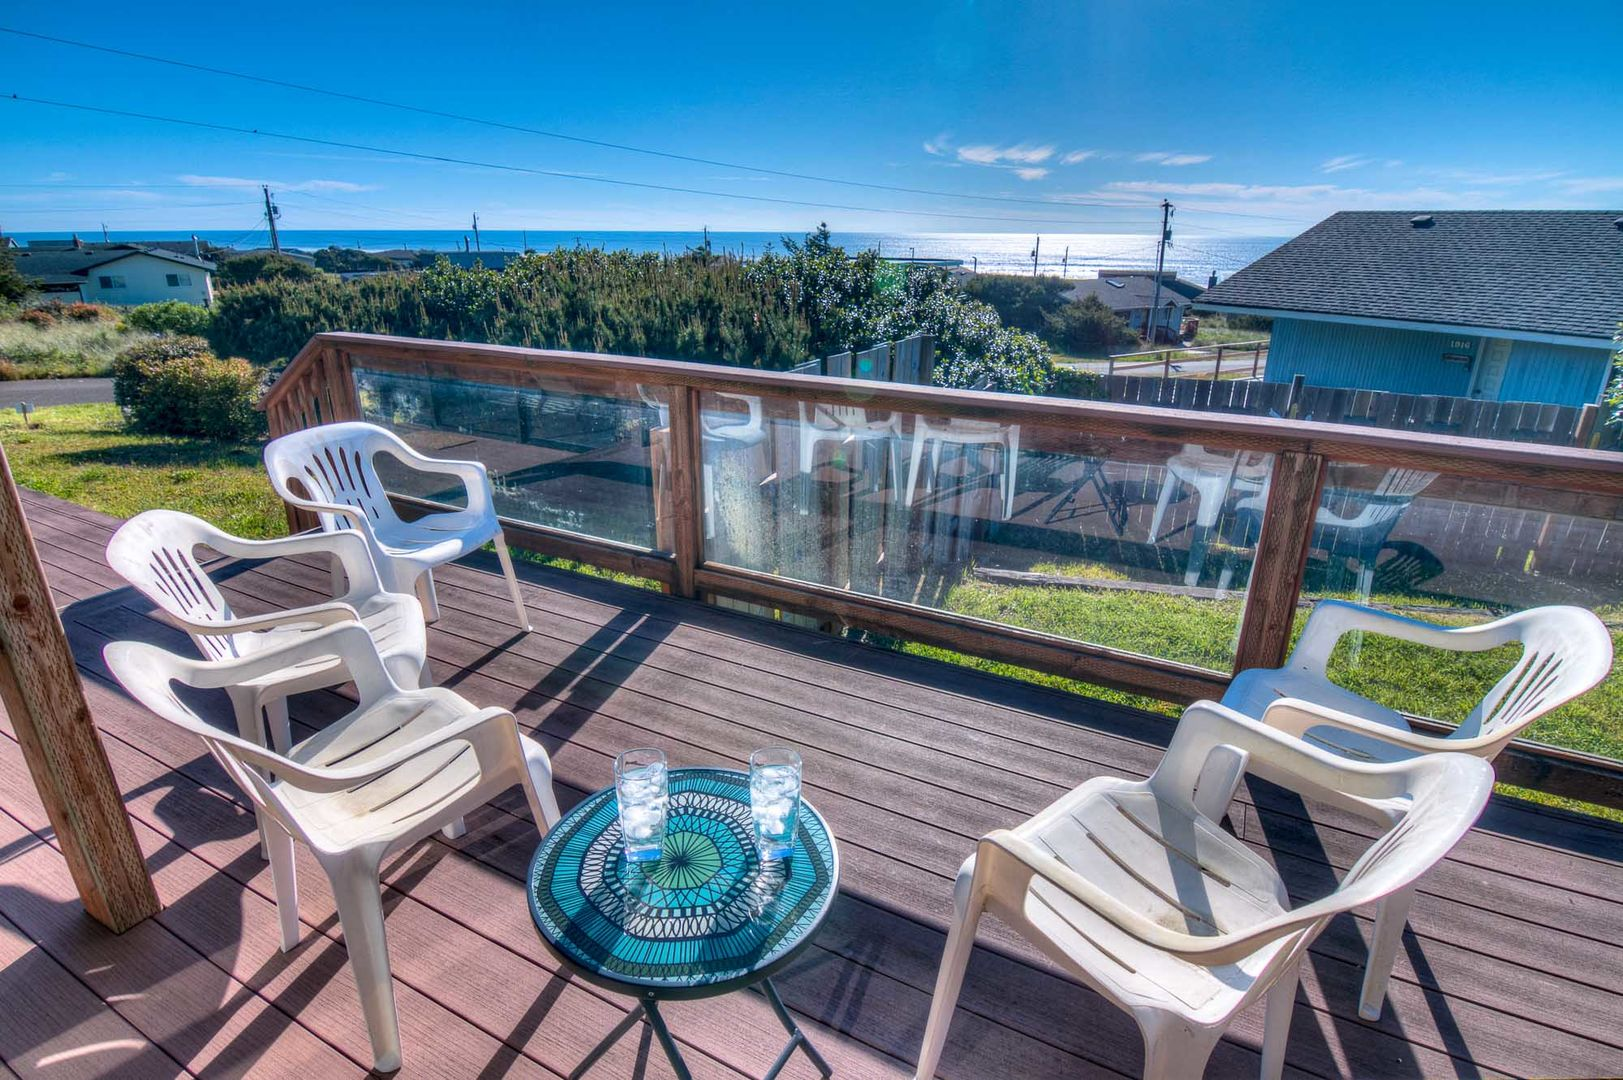 Relax on the deck and watch the different moods of the ocean.